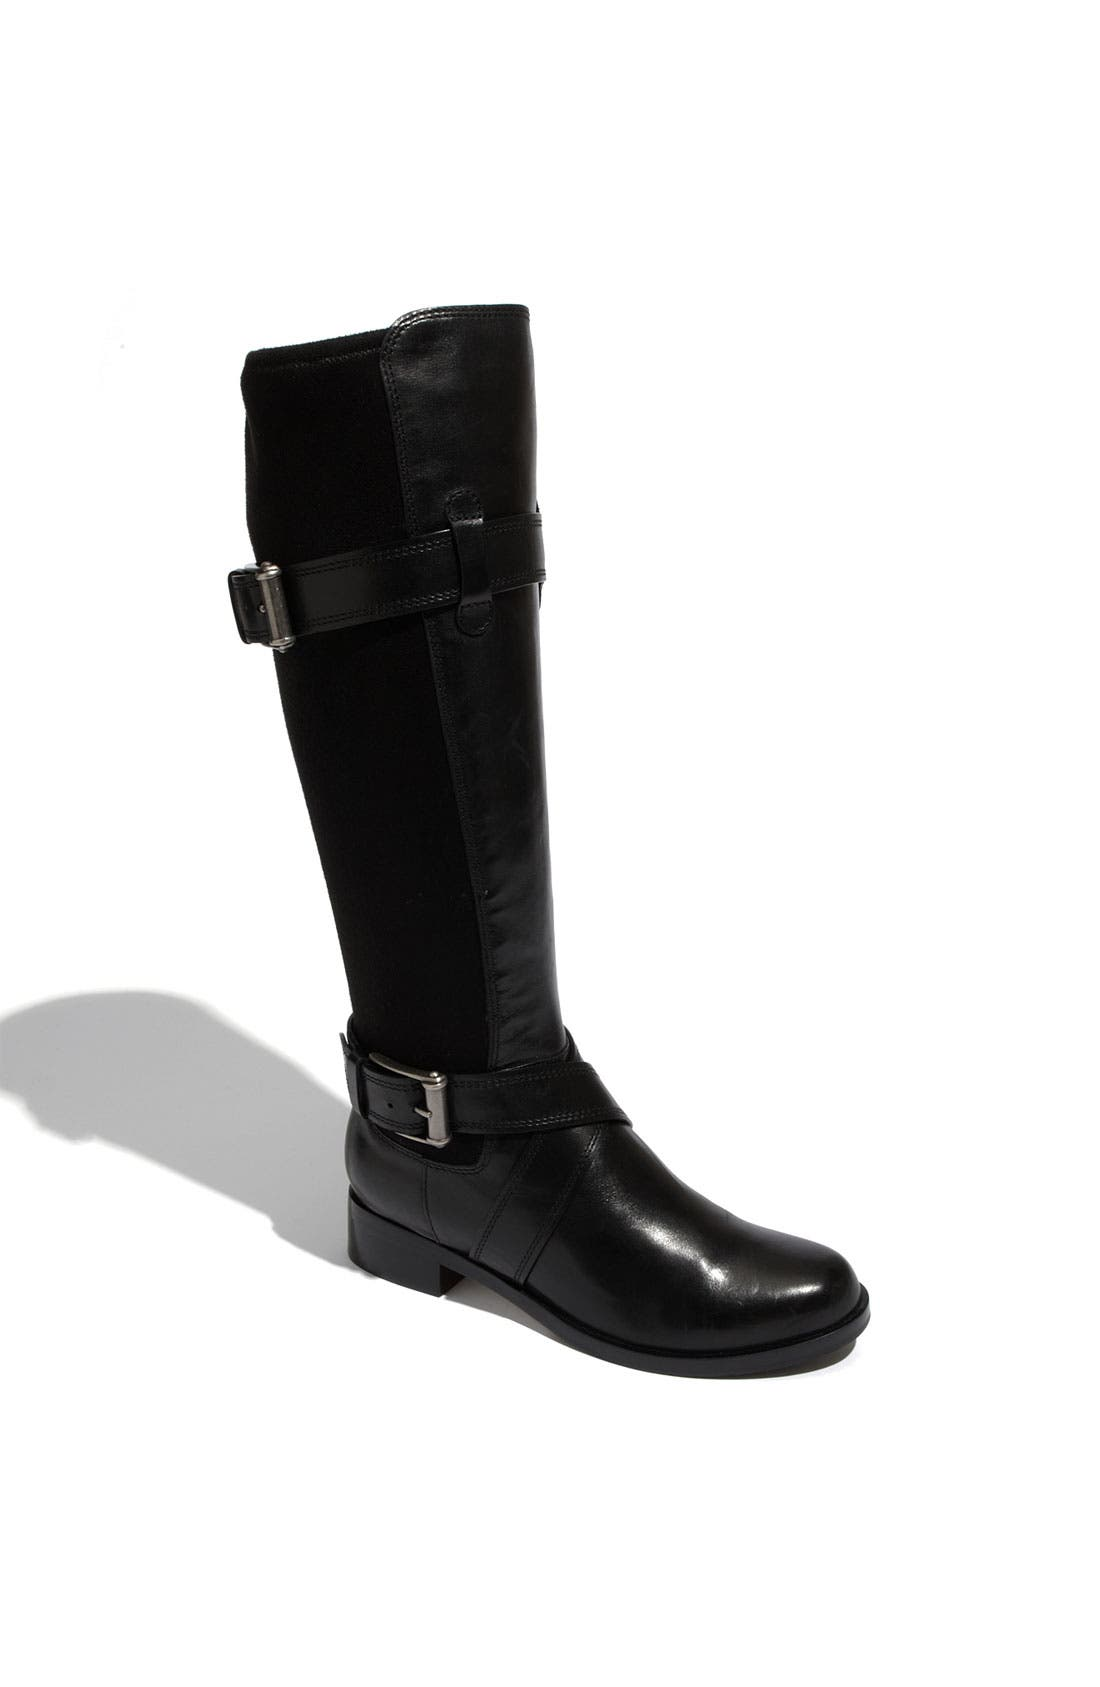 Alternate Image 1 Selected - Cole Haan 'Air Whitley' Buckle Strap Boot